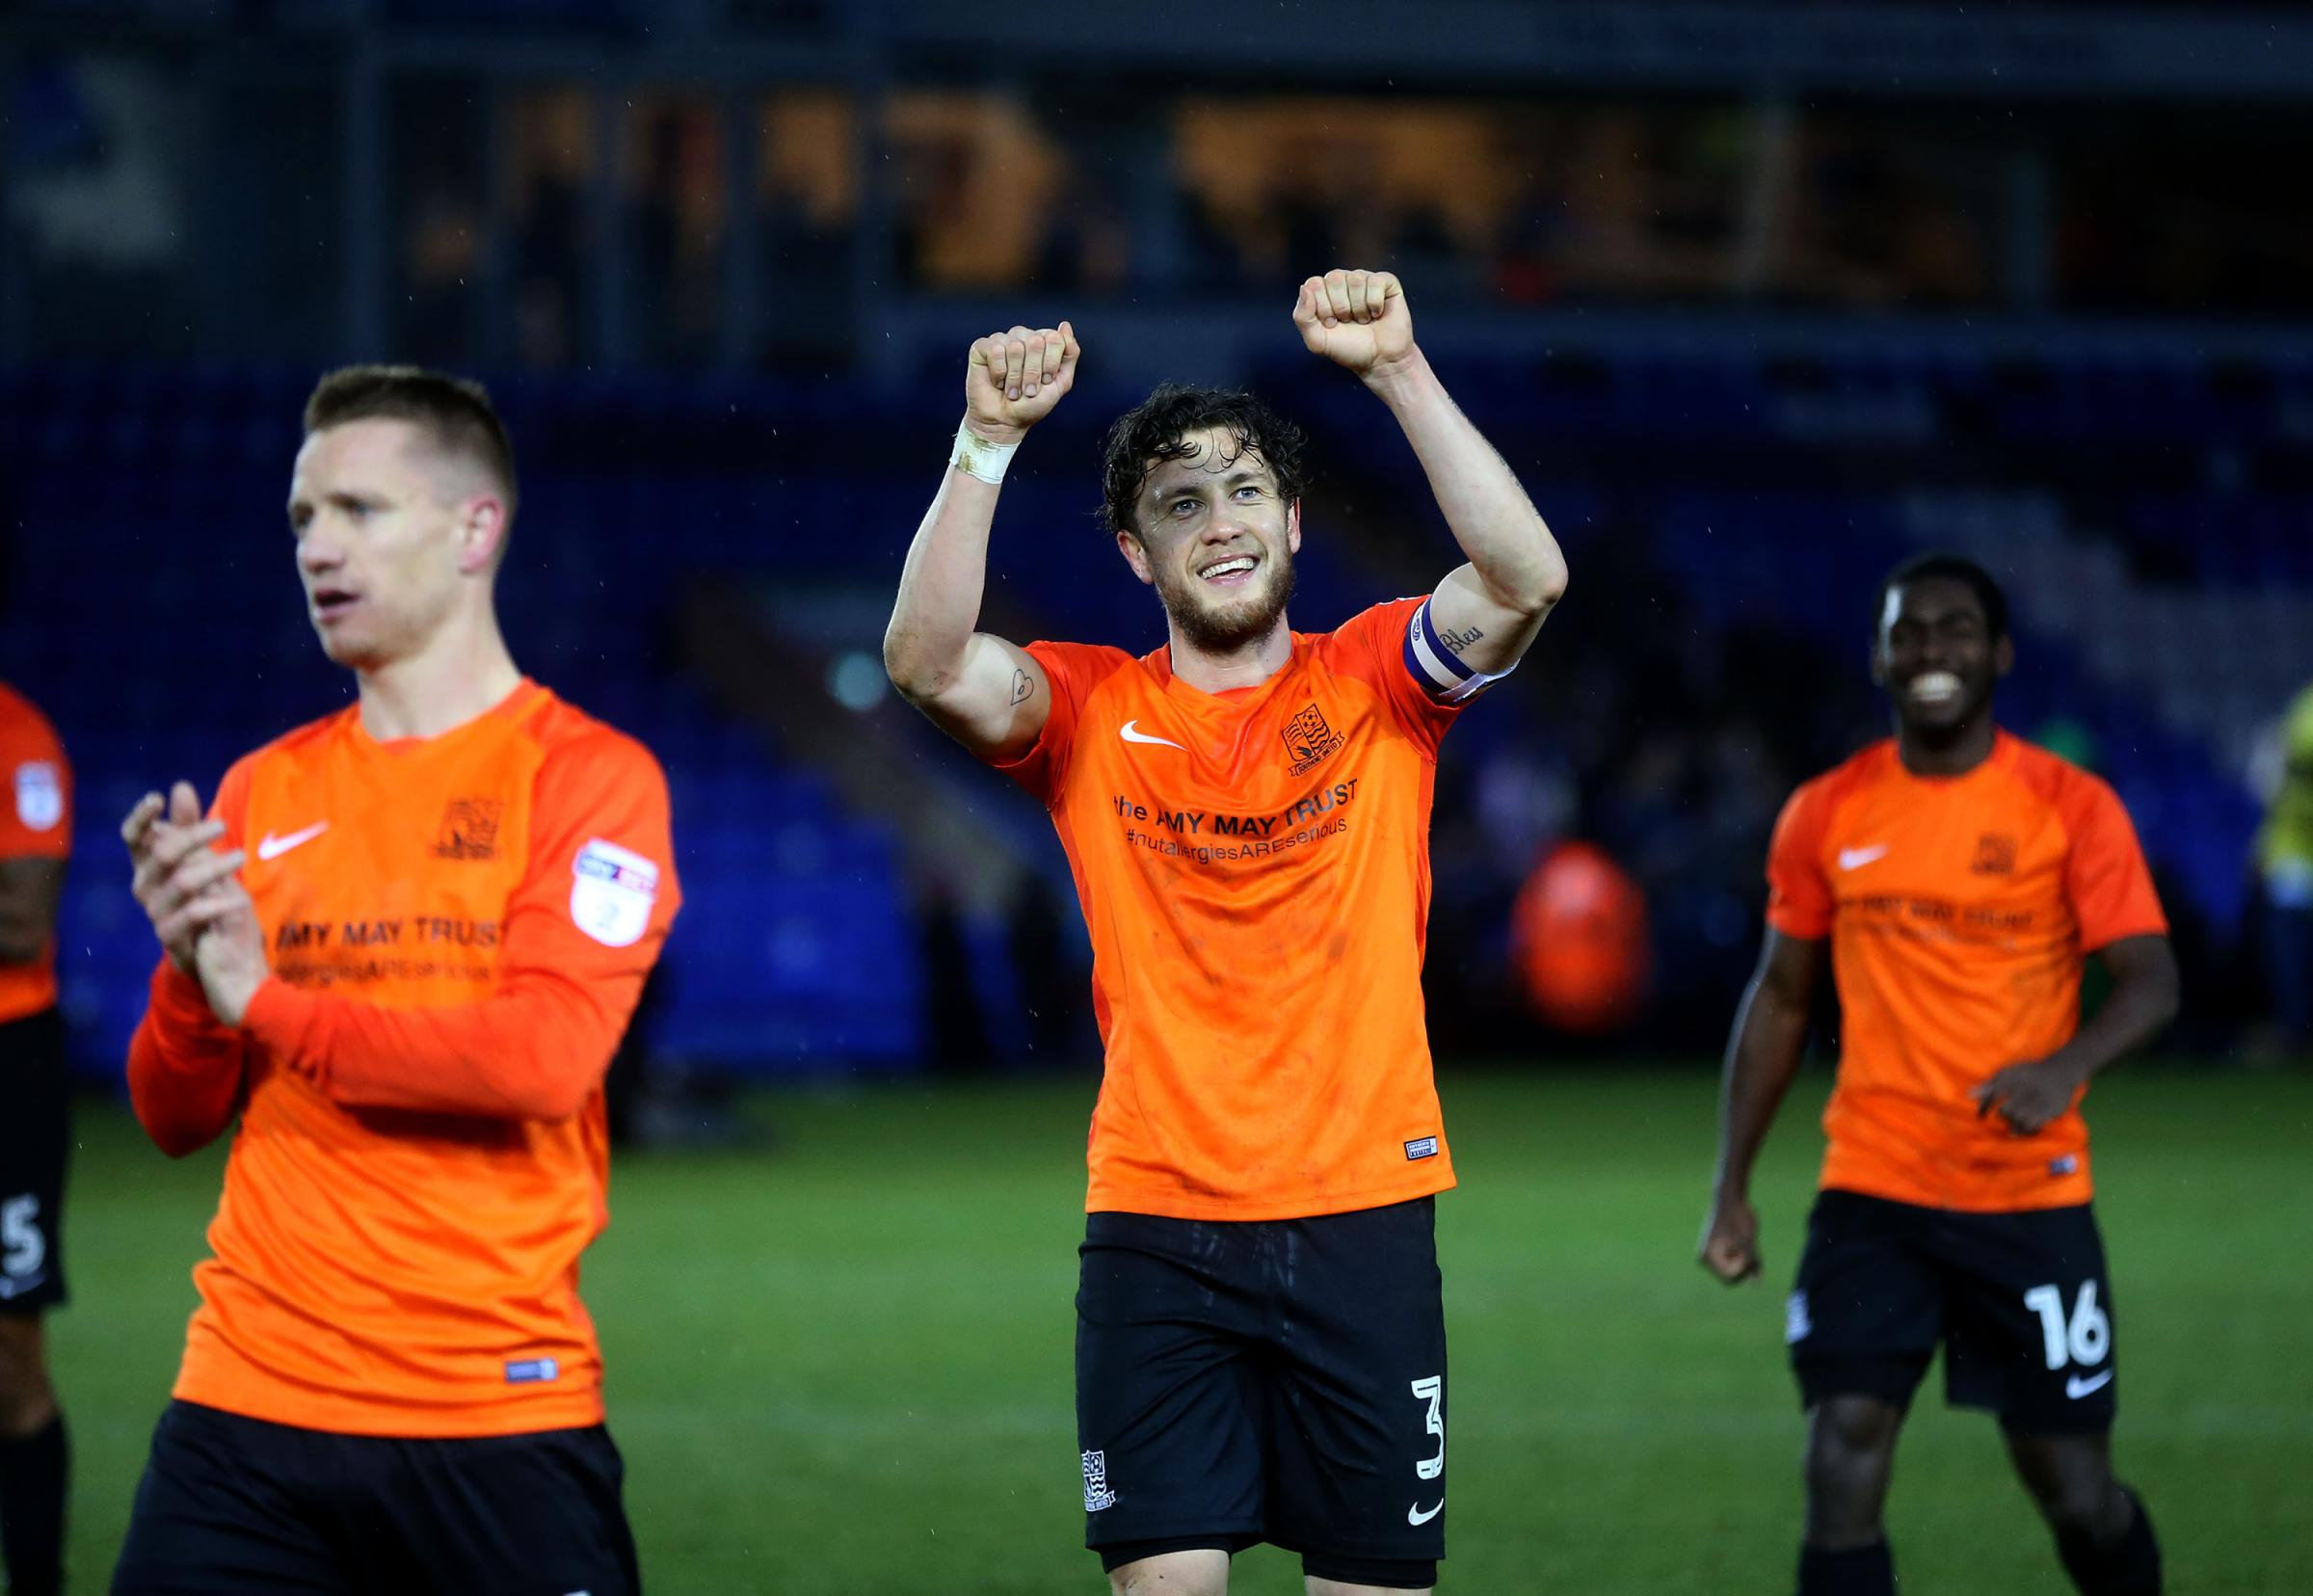 JD and Cokes - Jason Demetriou and Ben Coker celebrate last weekend's win at Peterborough United